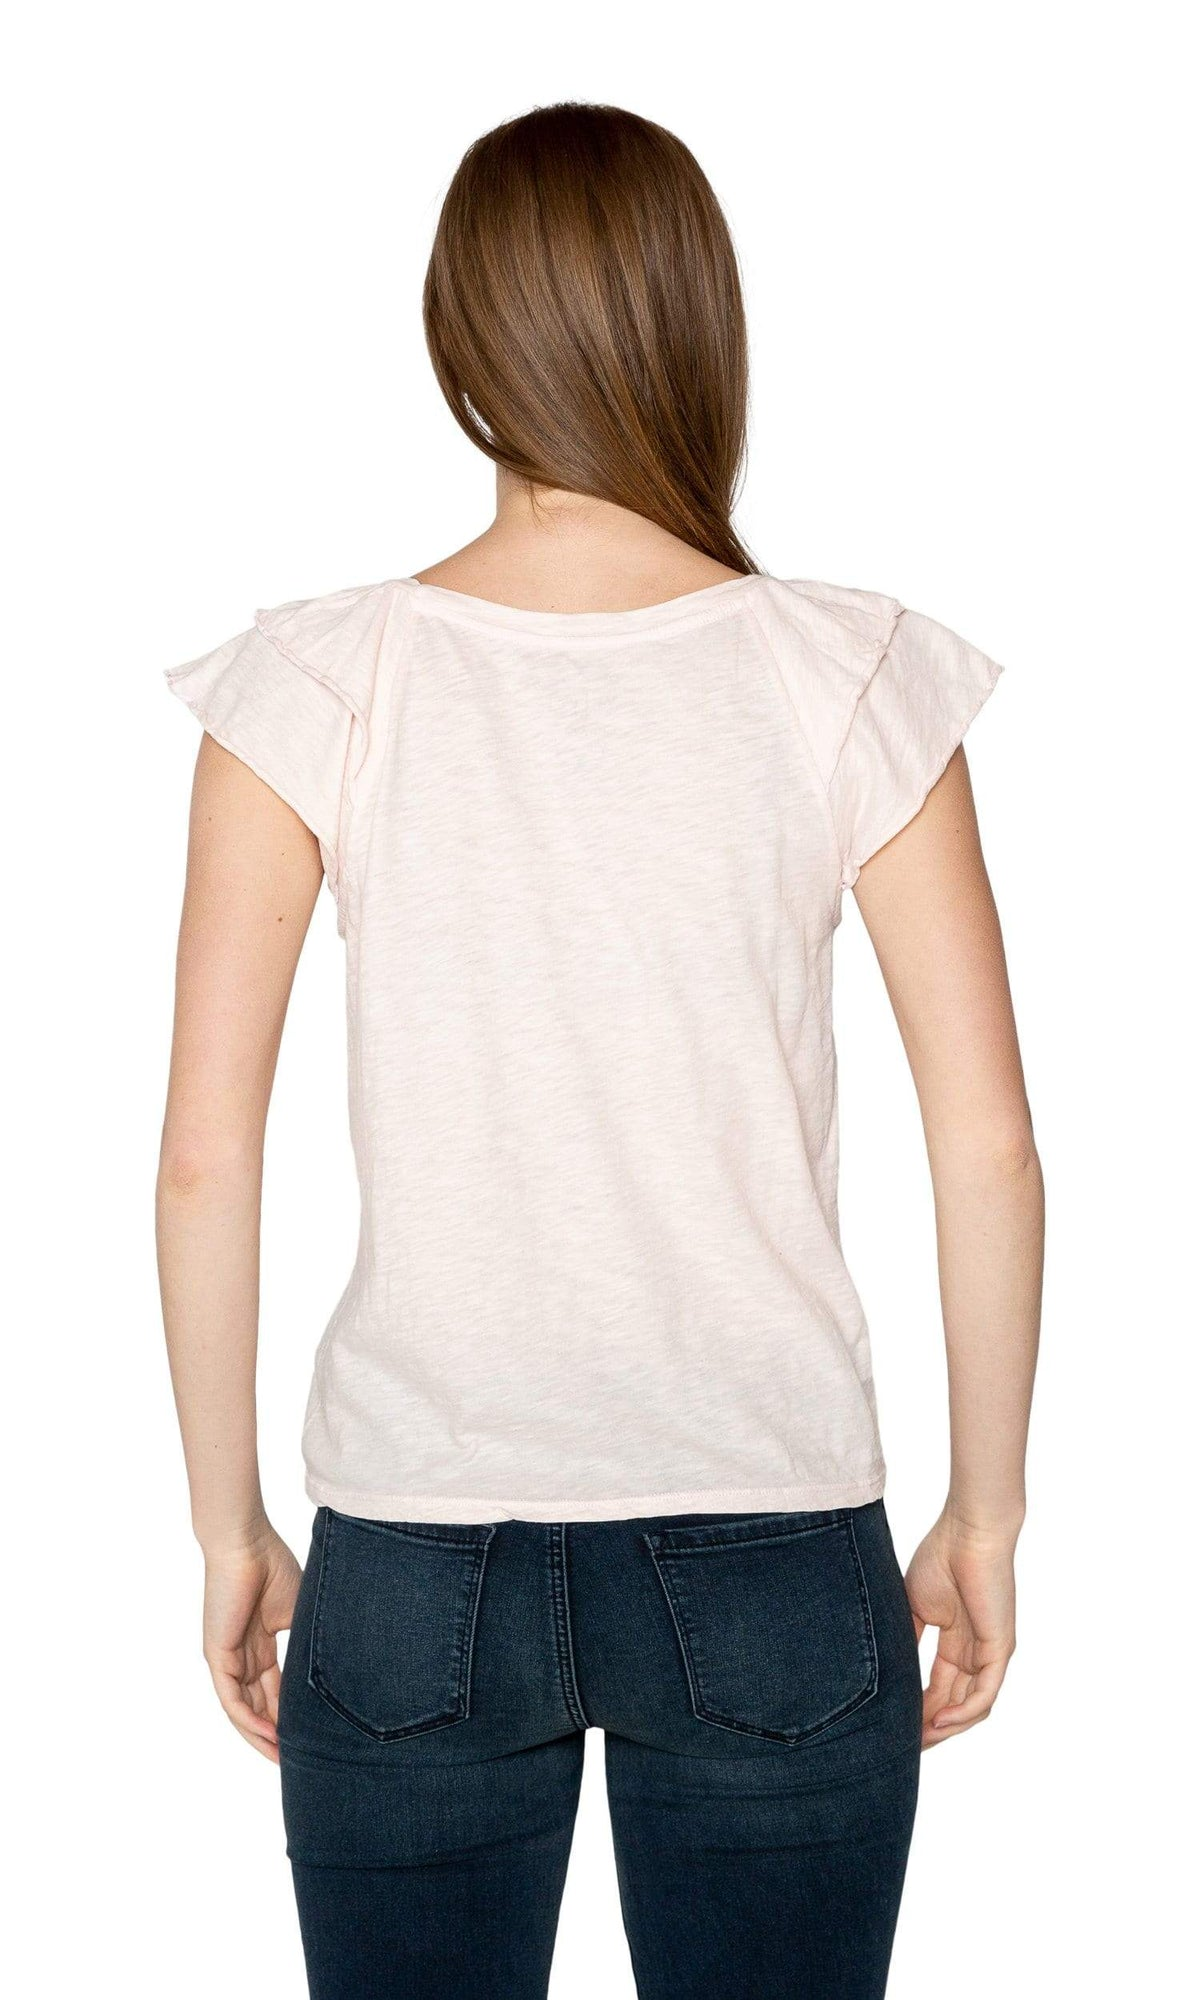 Velvet by Graham & Spencer Bethanie Cotton Slub Ruffle Sleeve Tee